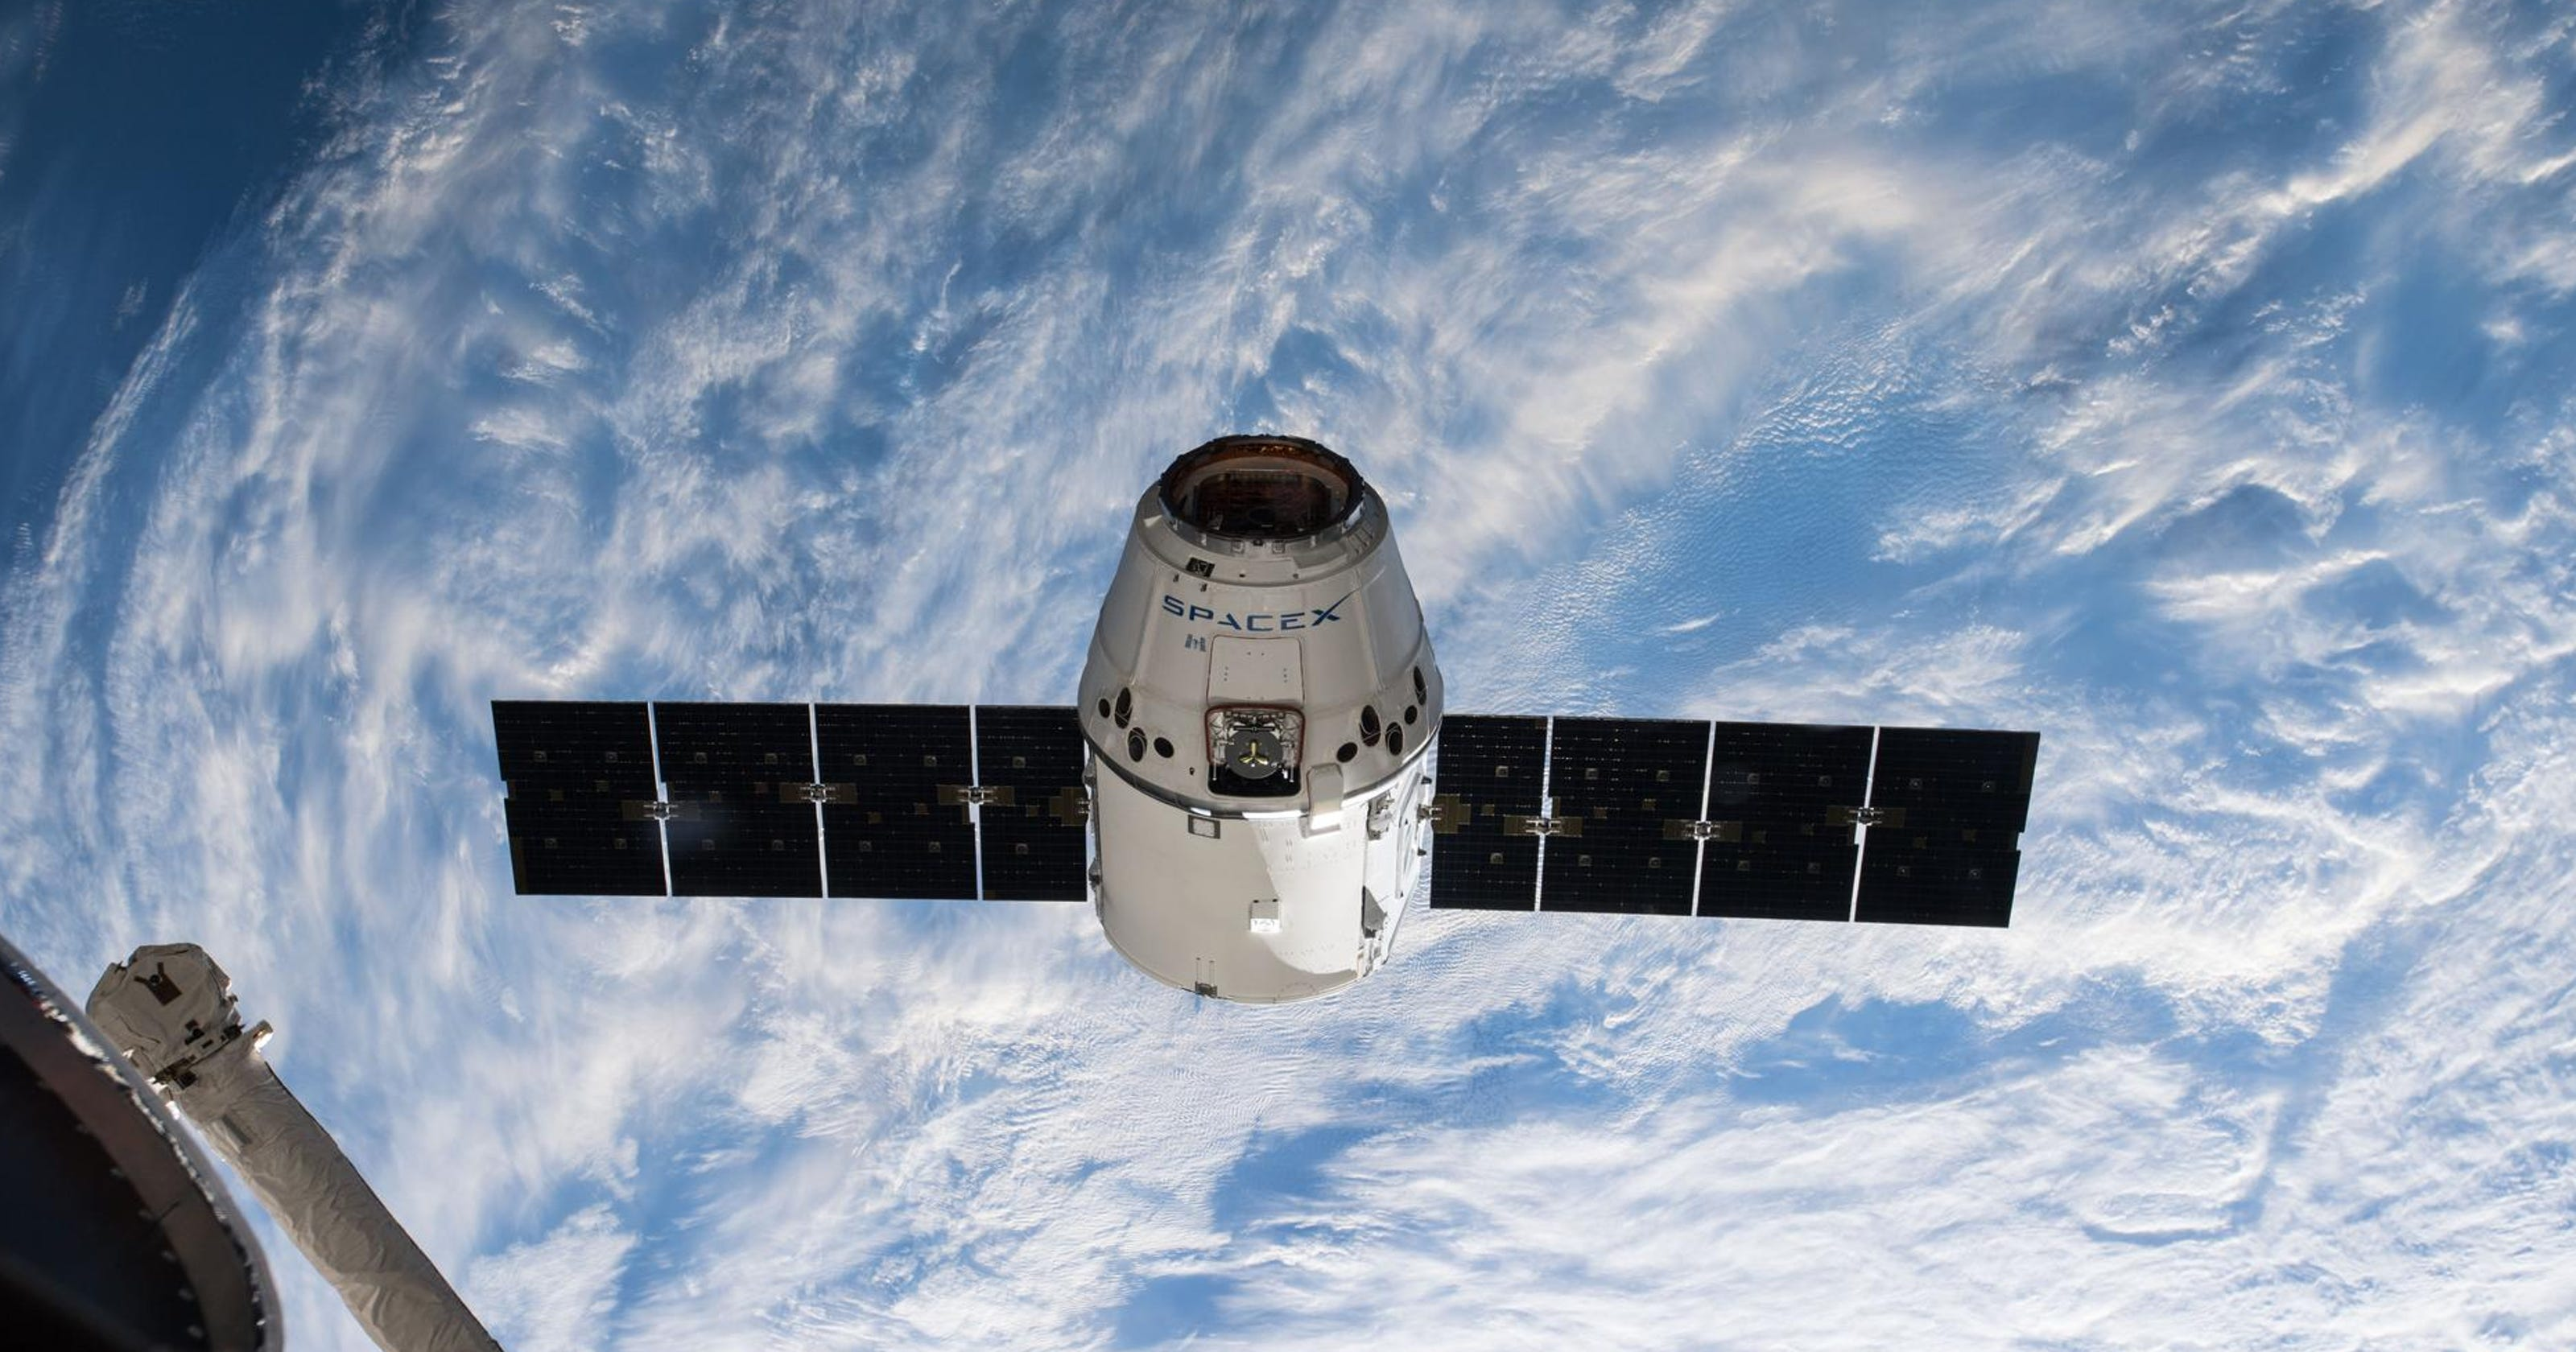 SpaceX Dragon spacecraft set for Pacific Ocean splashdown